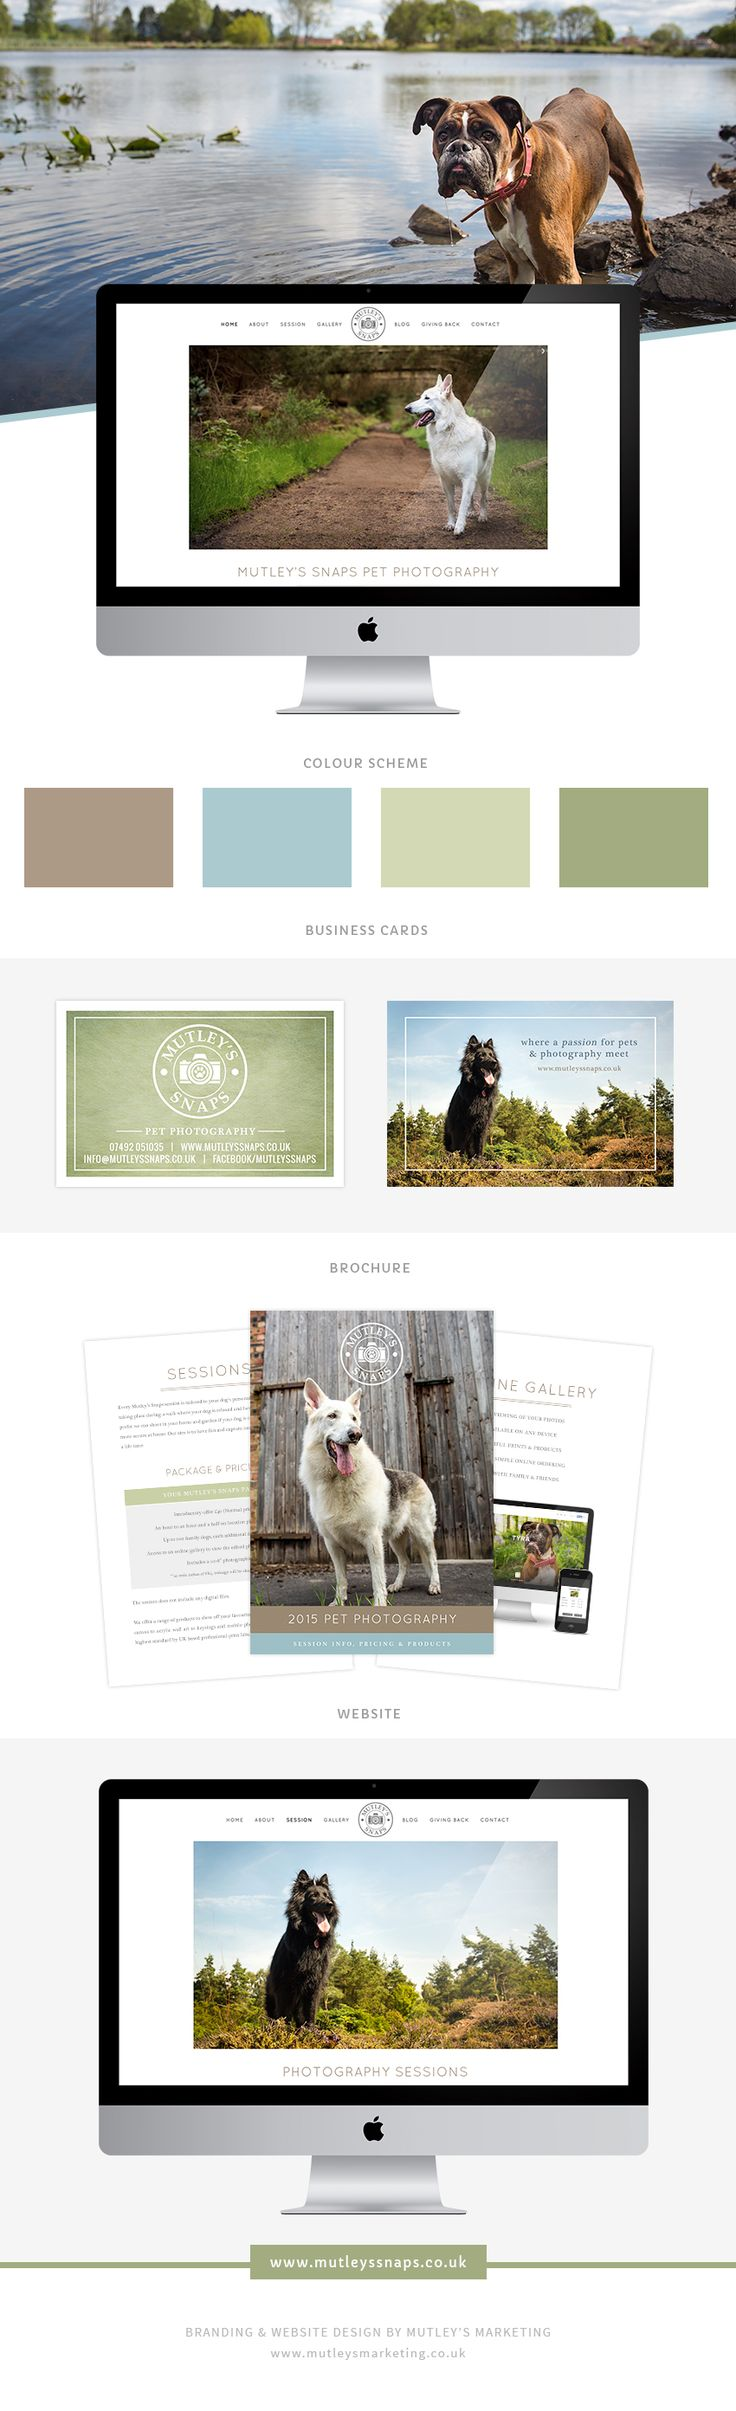 Mutley's Snaps Pet Photography Branding & Website Design by Mutley's Marketing | Design Services for Pet Businesses